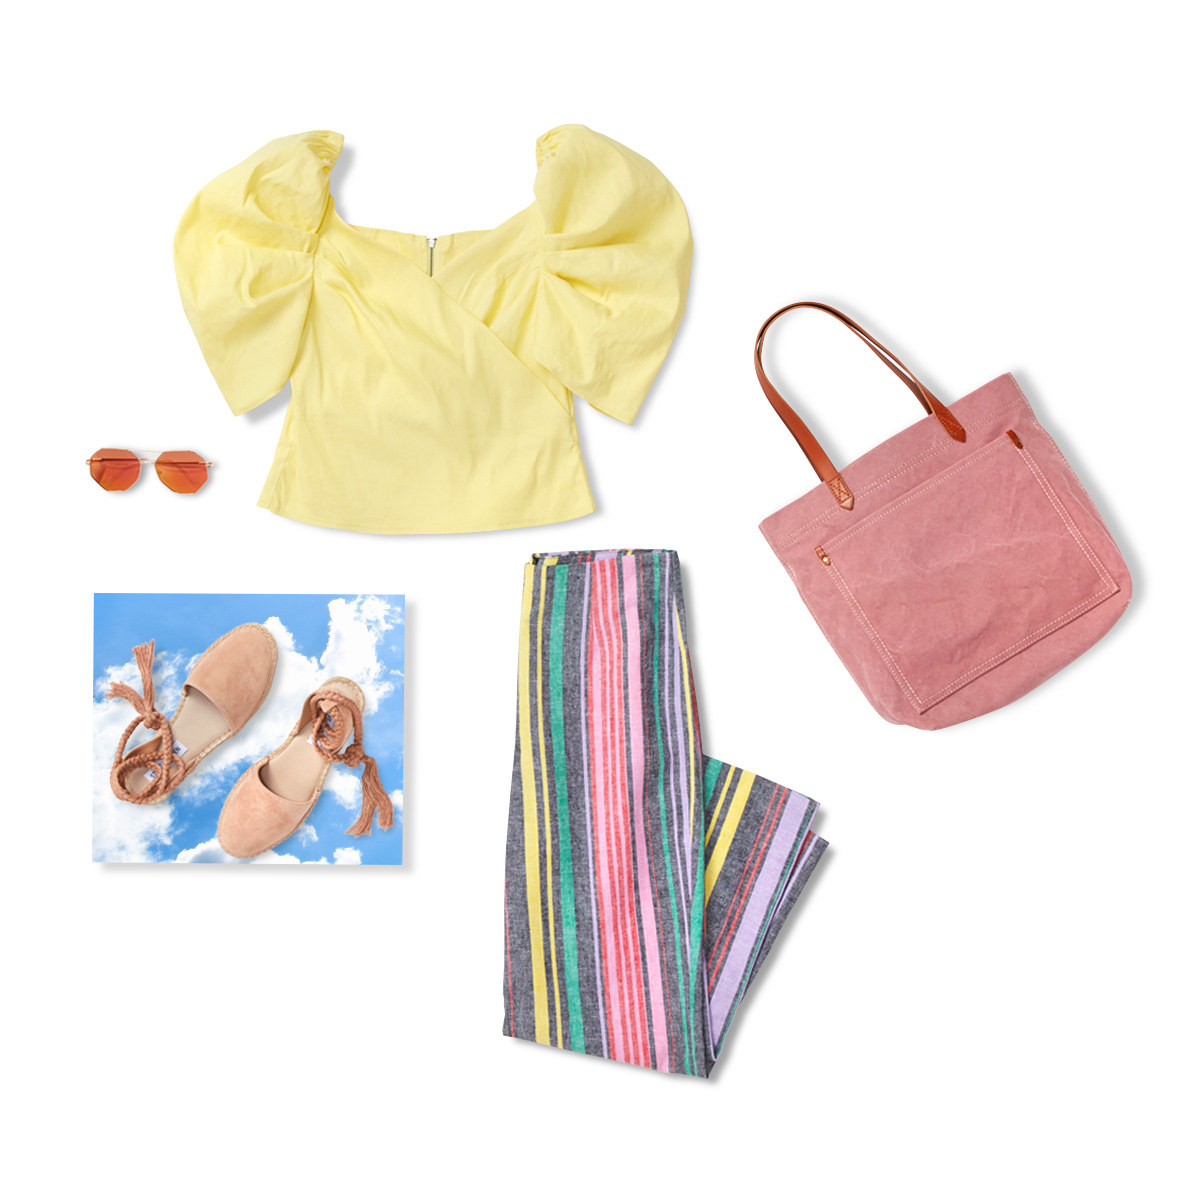 Yellow top, striped pants, sunglasses, pink suede bag and nude sandals laid flat on a white background.